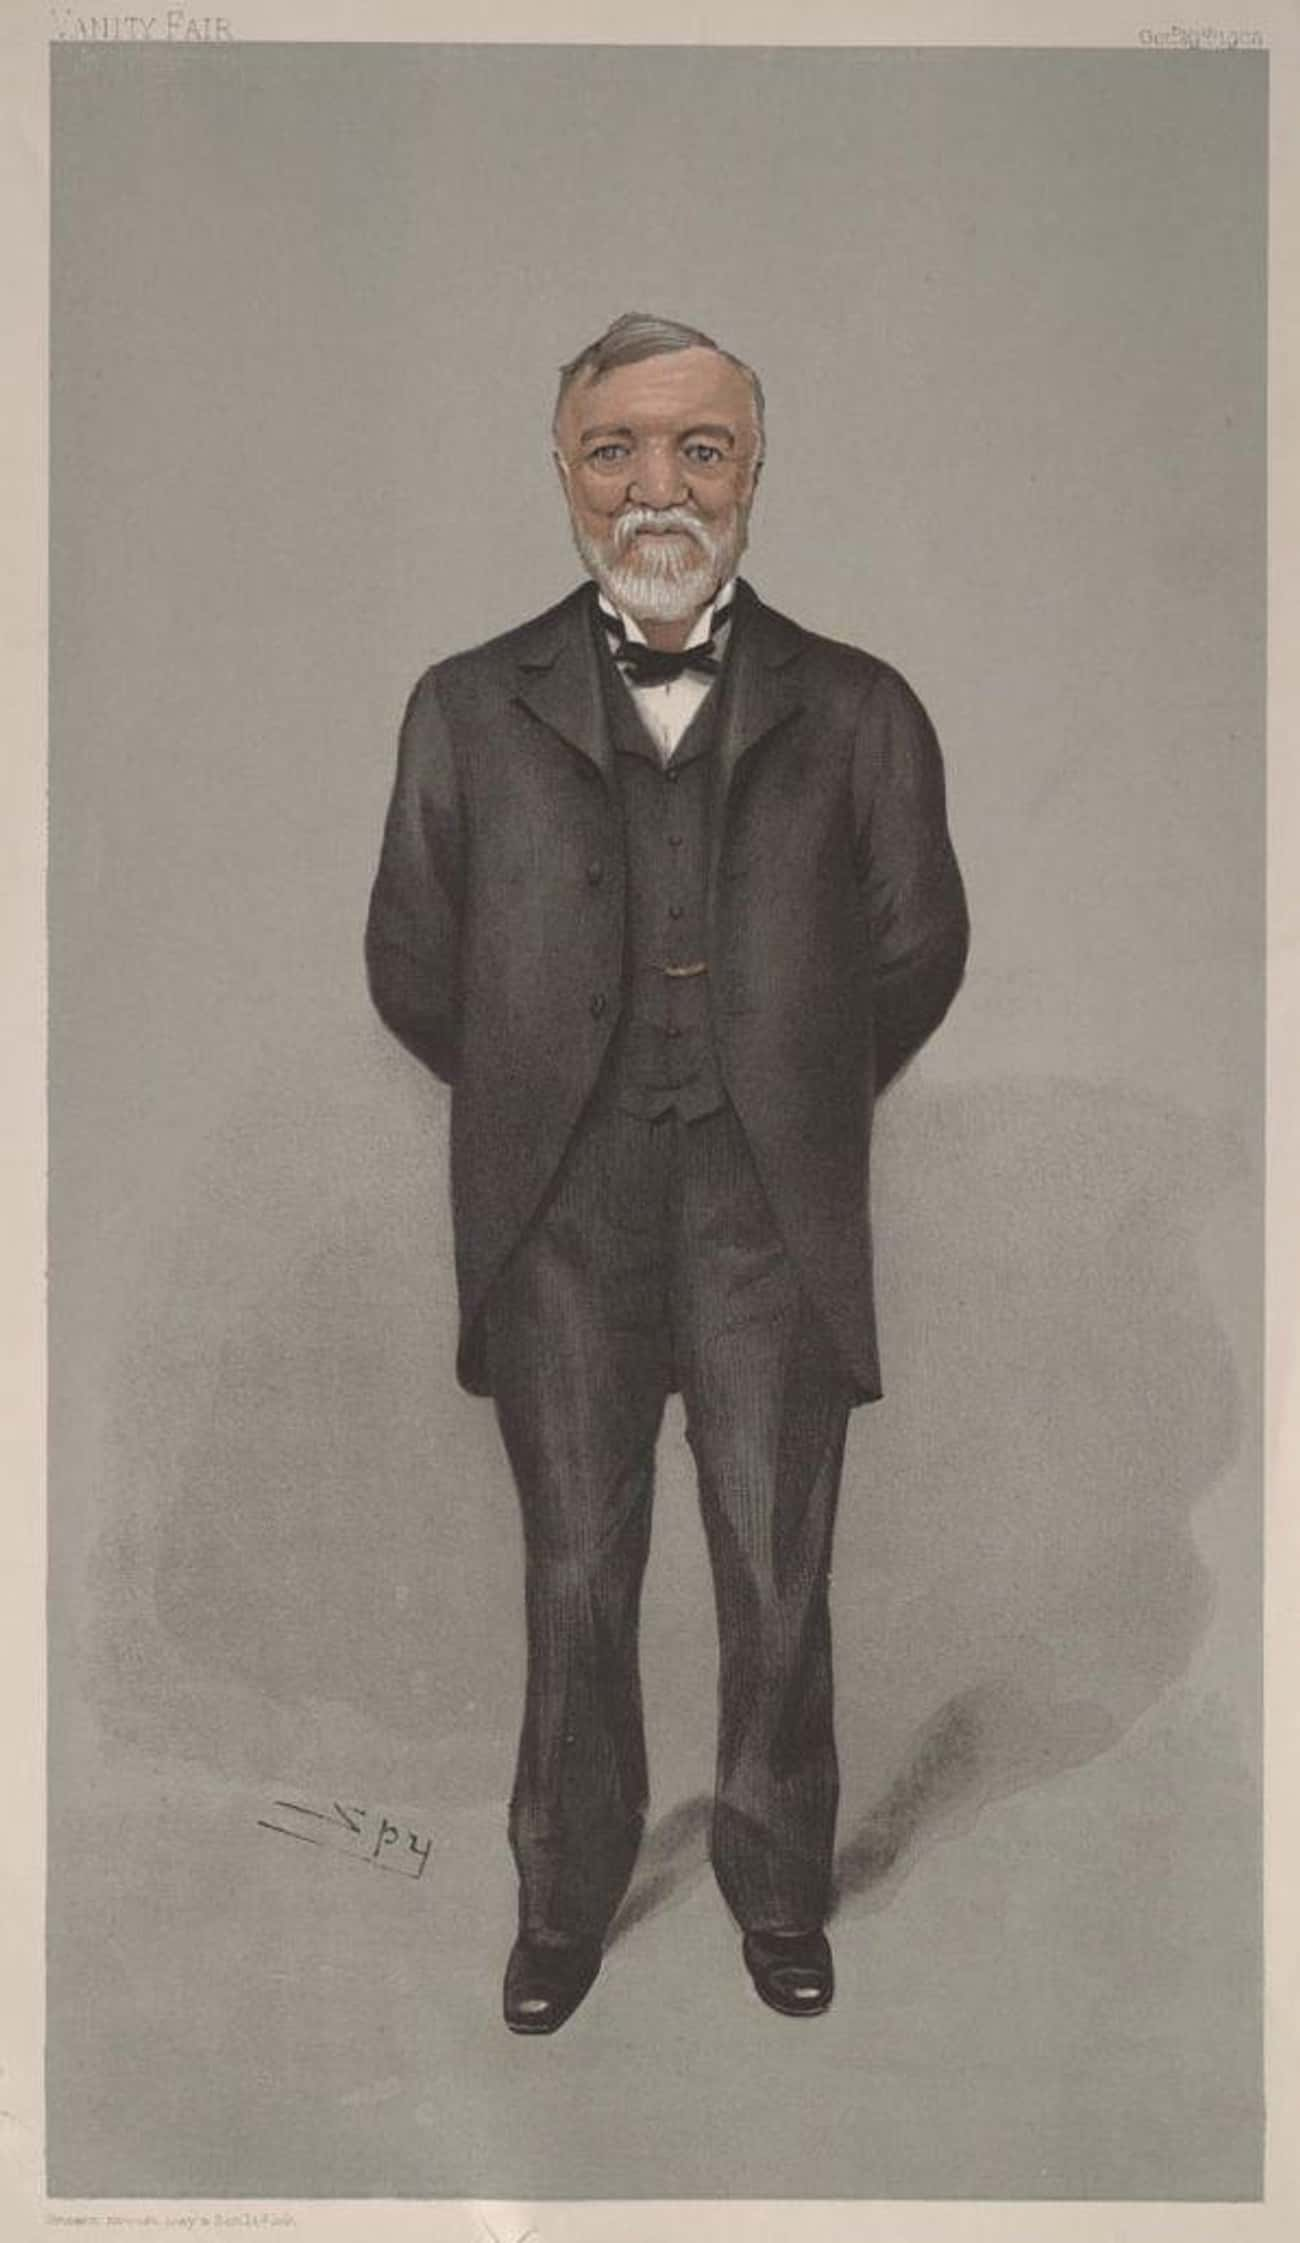 He Justified His Low Wages By  is listed (or ranked) 4 on the list Robbing From The Poor To Give To The Rich: Andrew Carnegie And His Mega-Legacy